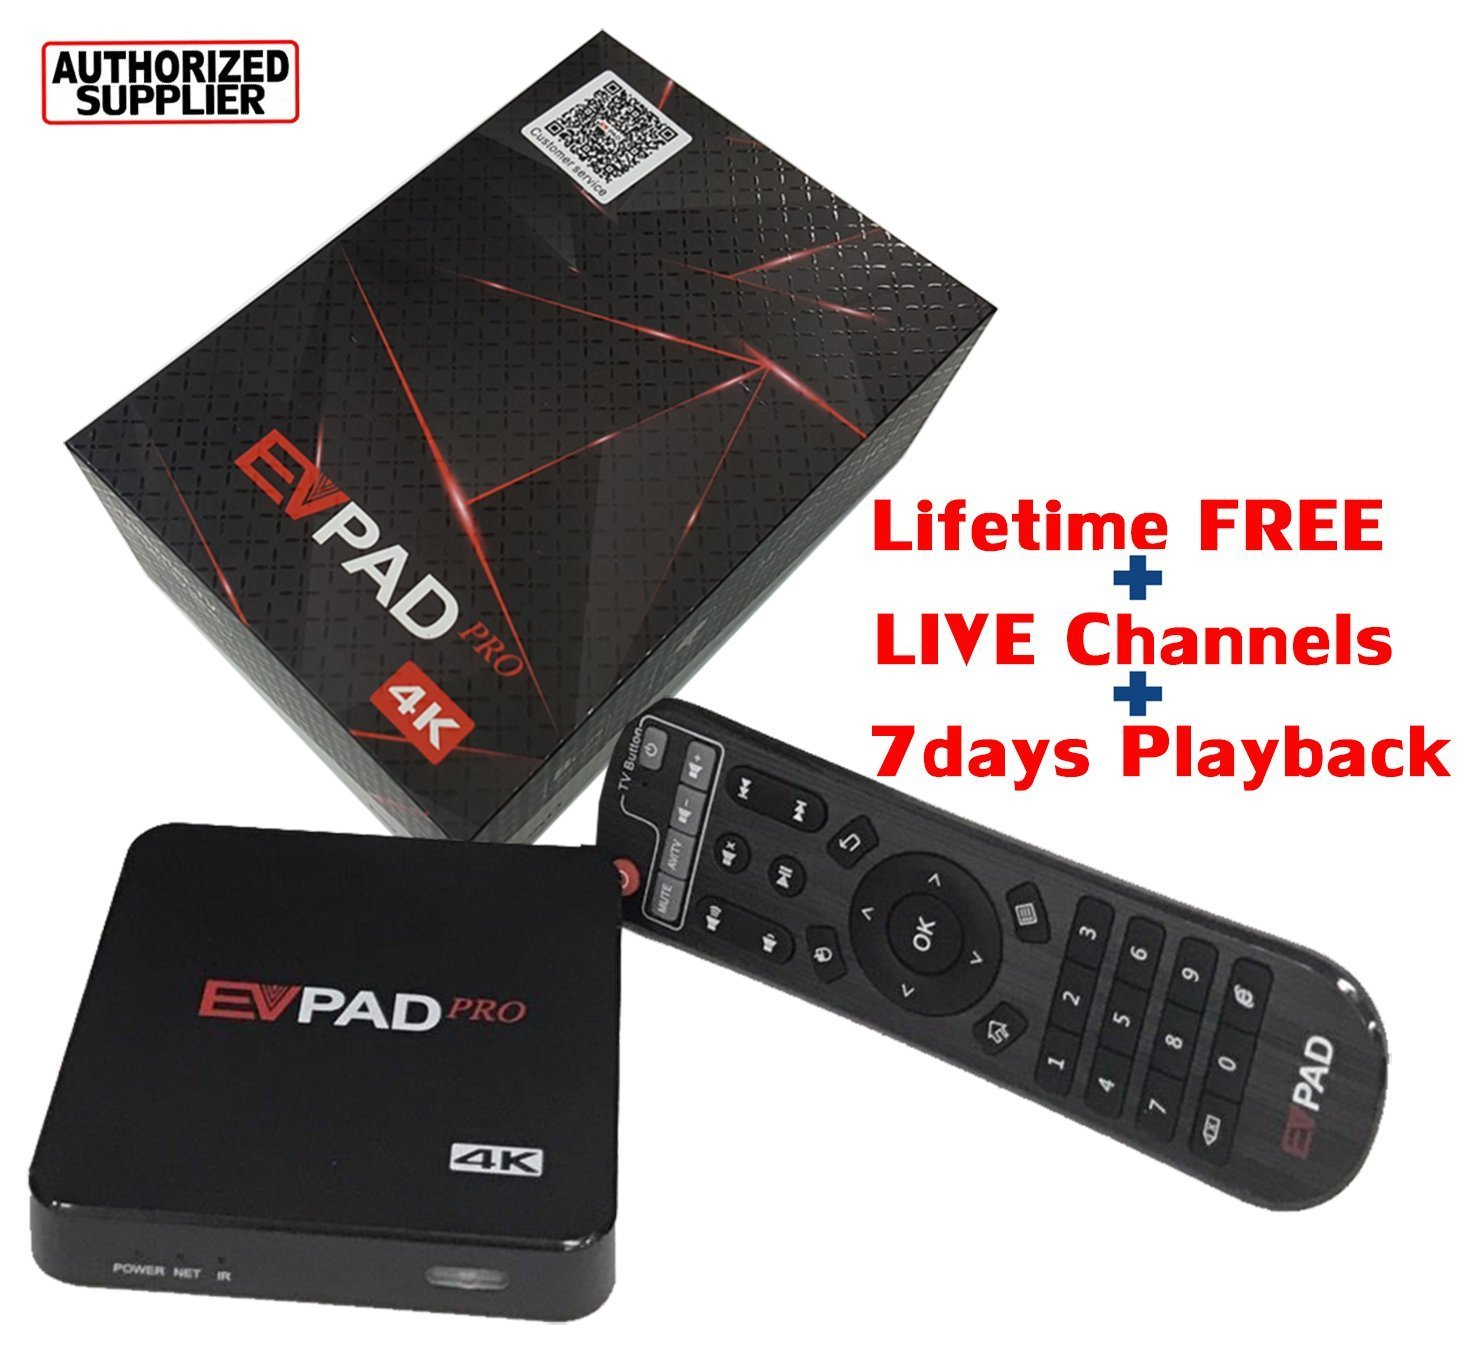 EVPAD PRO Android China TV Box with 1500+ Global Live